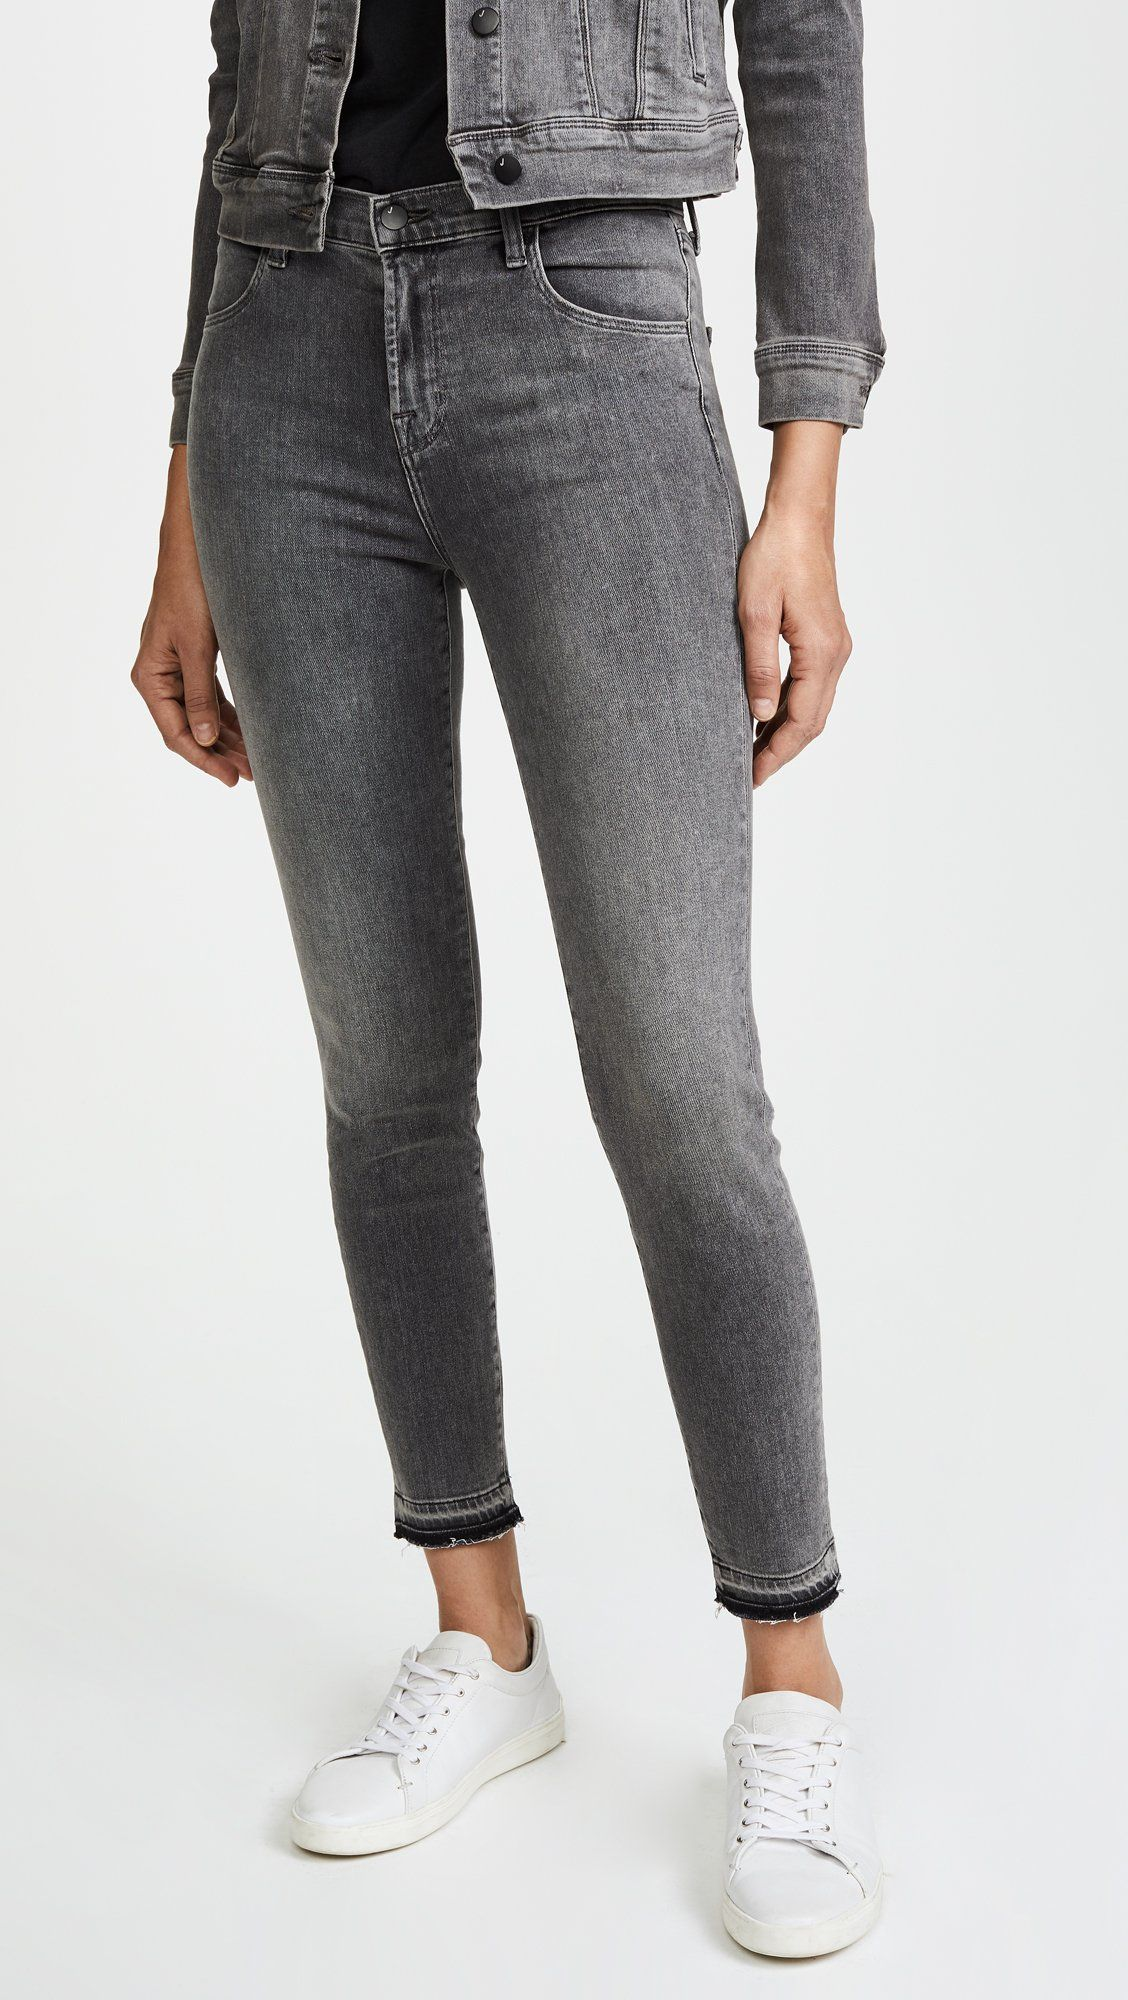 0927ef975a5a J Brand Jeans Womens Alana High Rise Crop Skinny Earl Grey 30 * Check out  this great product.(It is Amazon affiliate link) #WomenJeansCollection